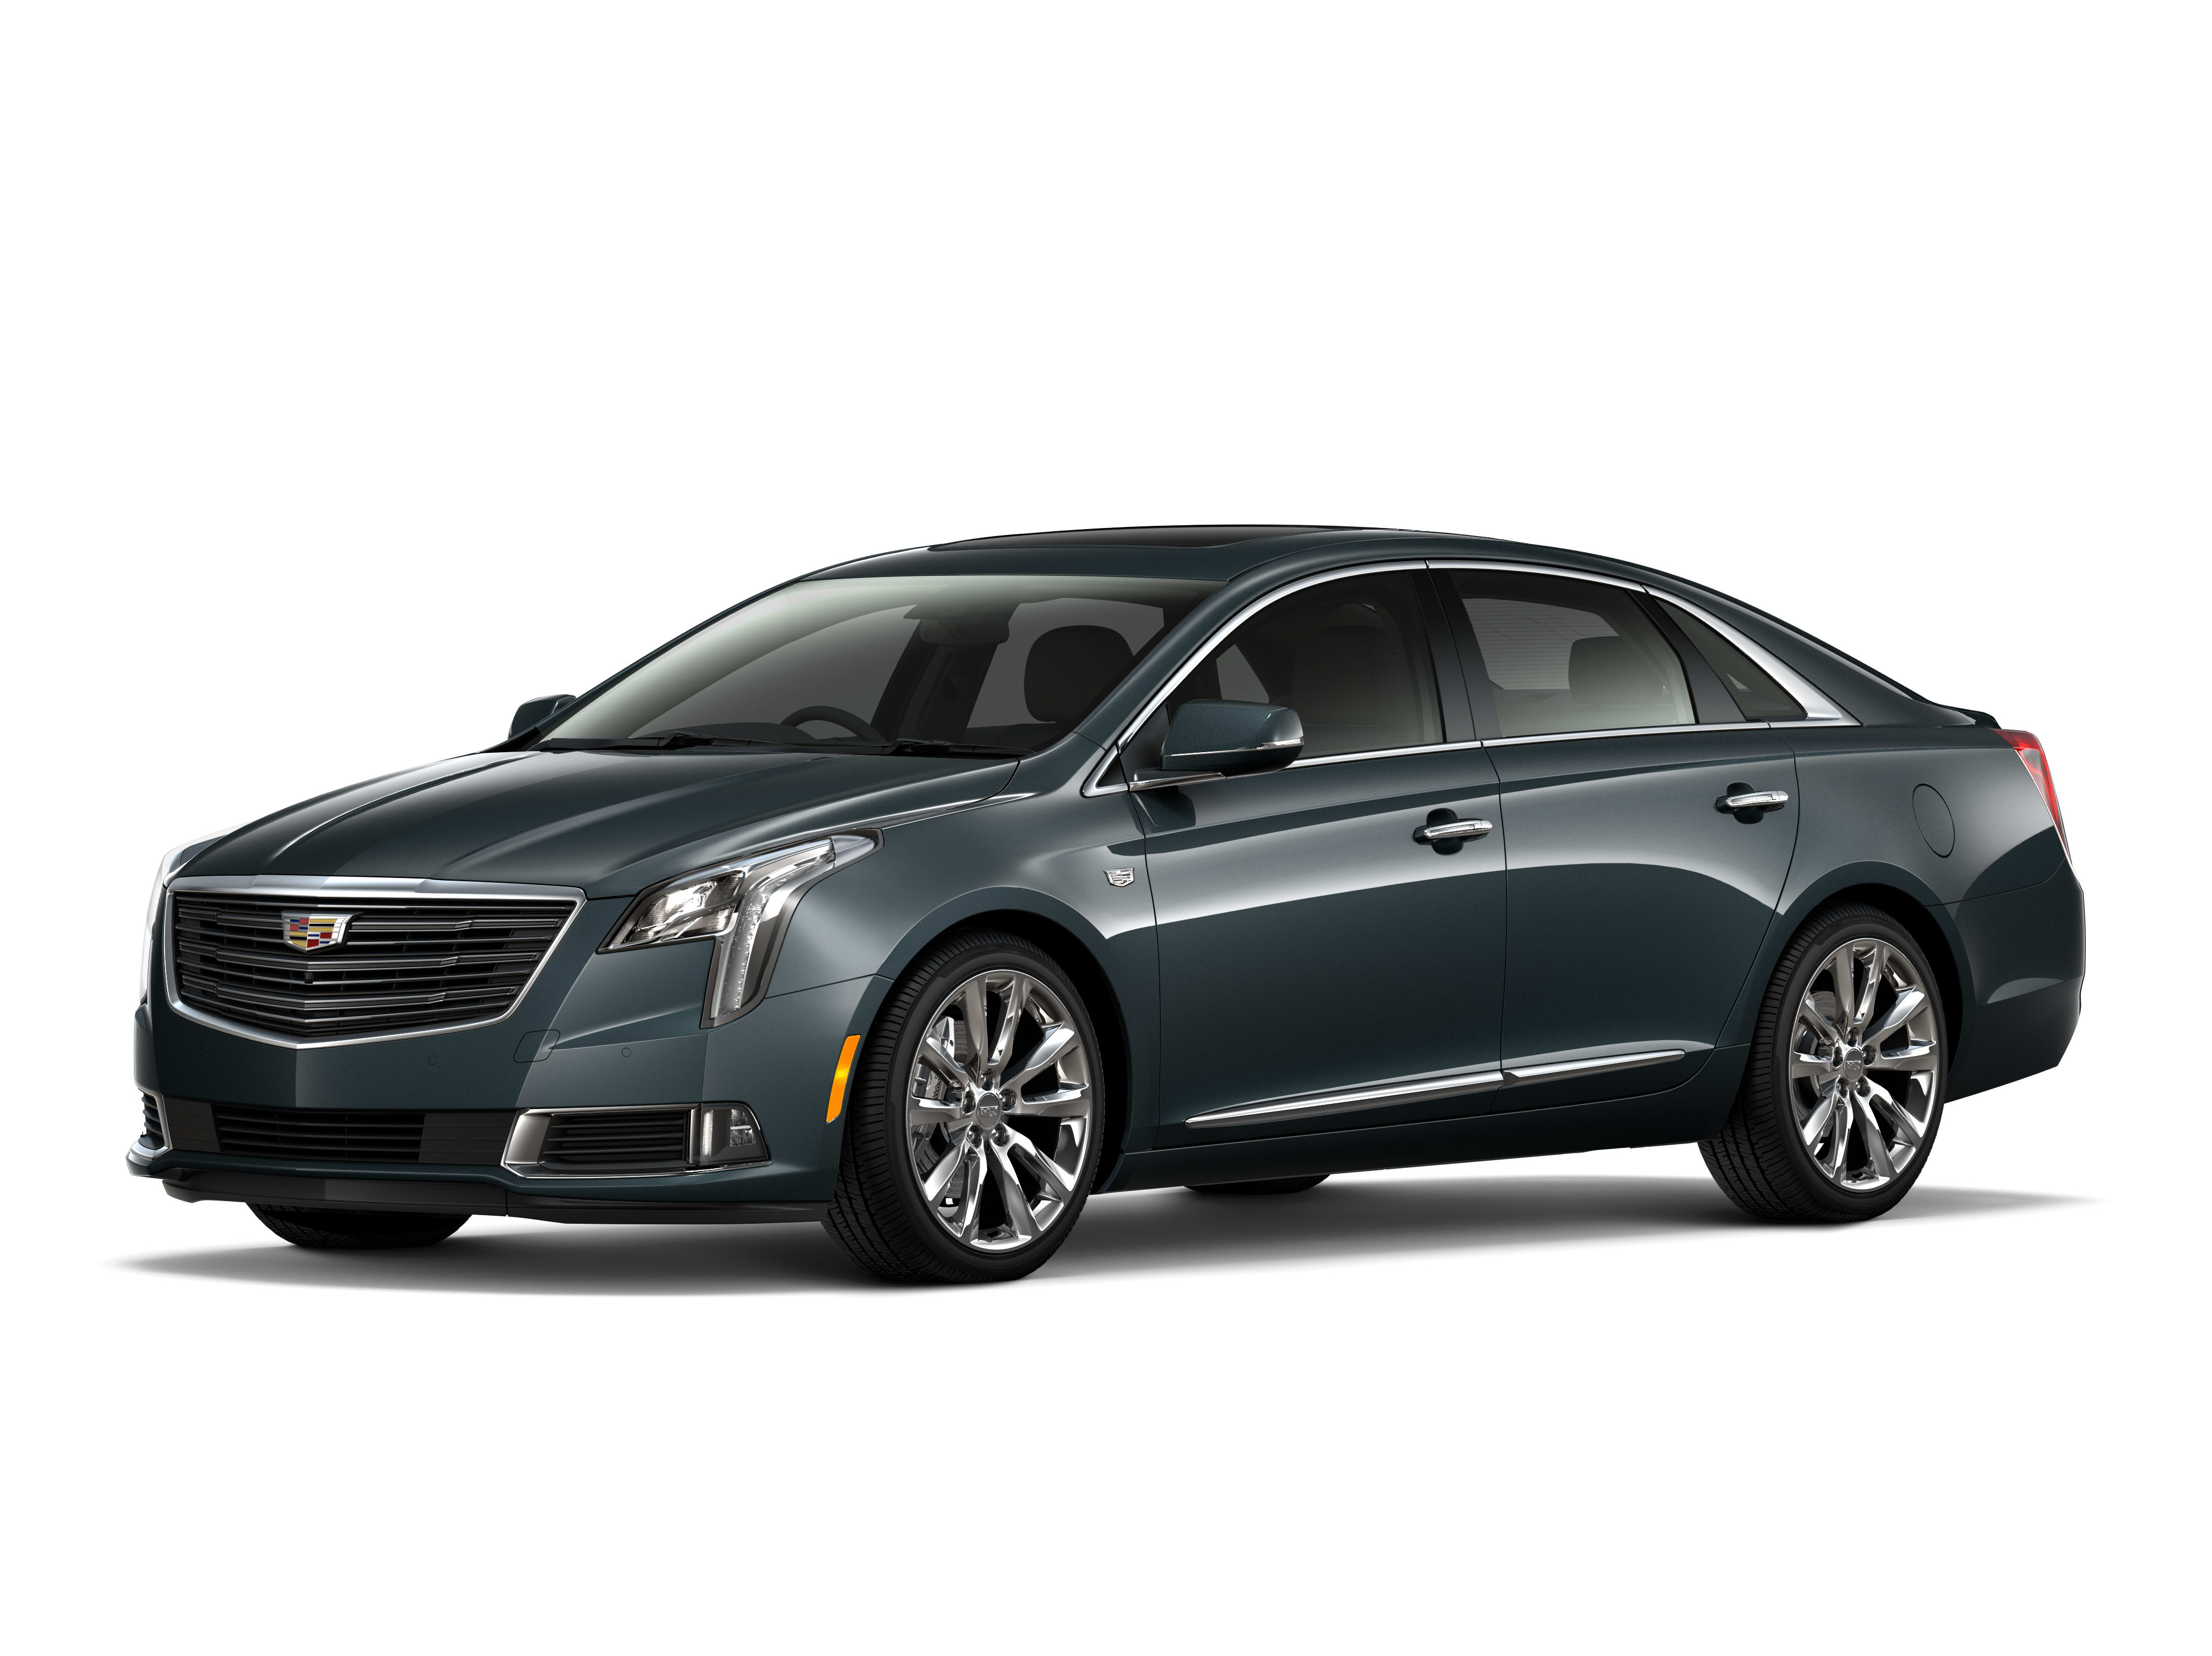 cadillac tuning all shop car viezu package brands category escalade range online rover parts for spare land accessories